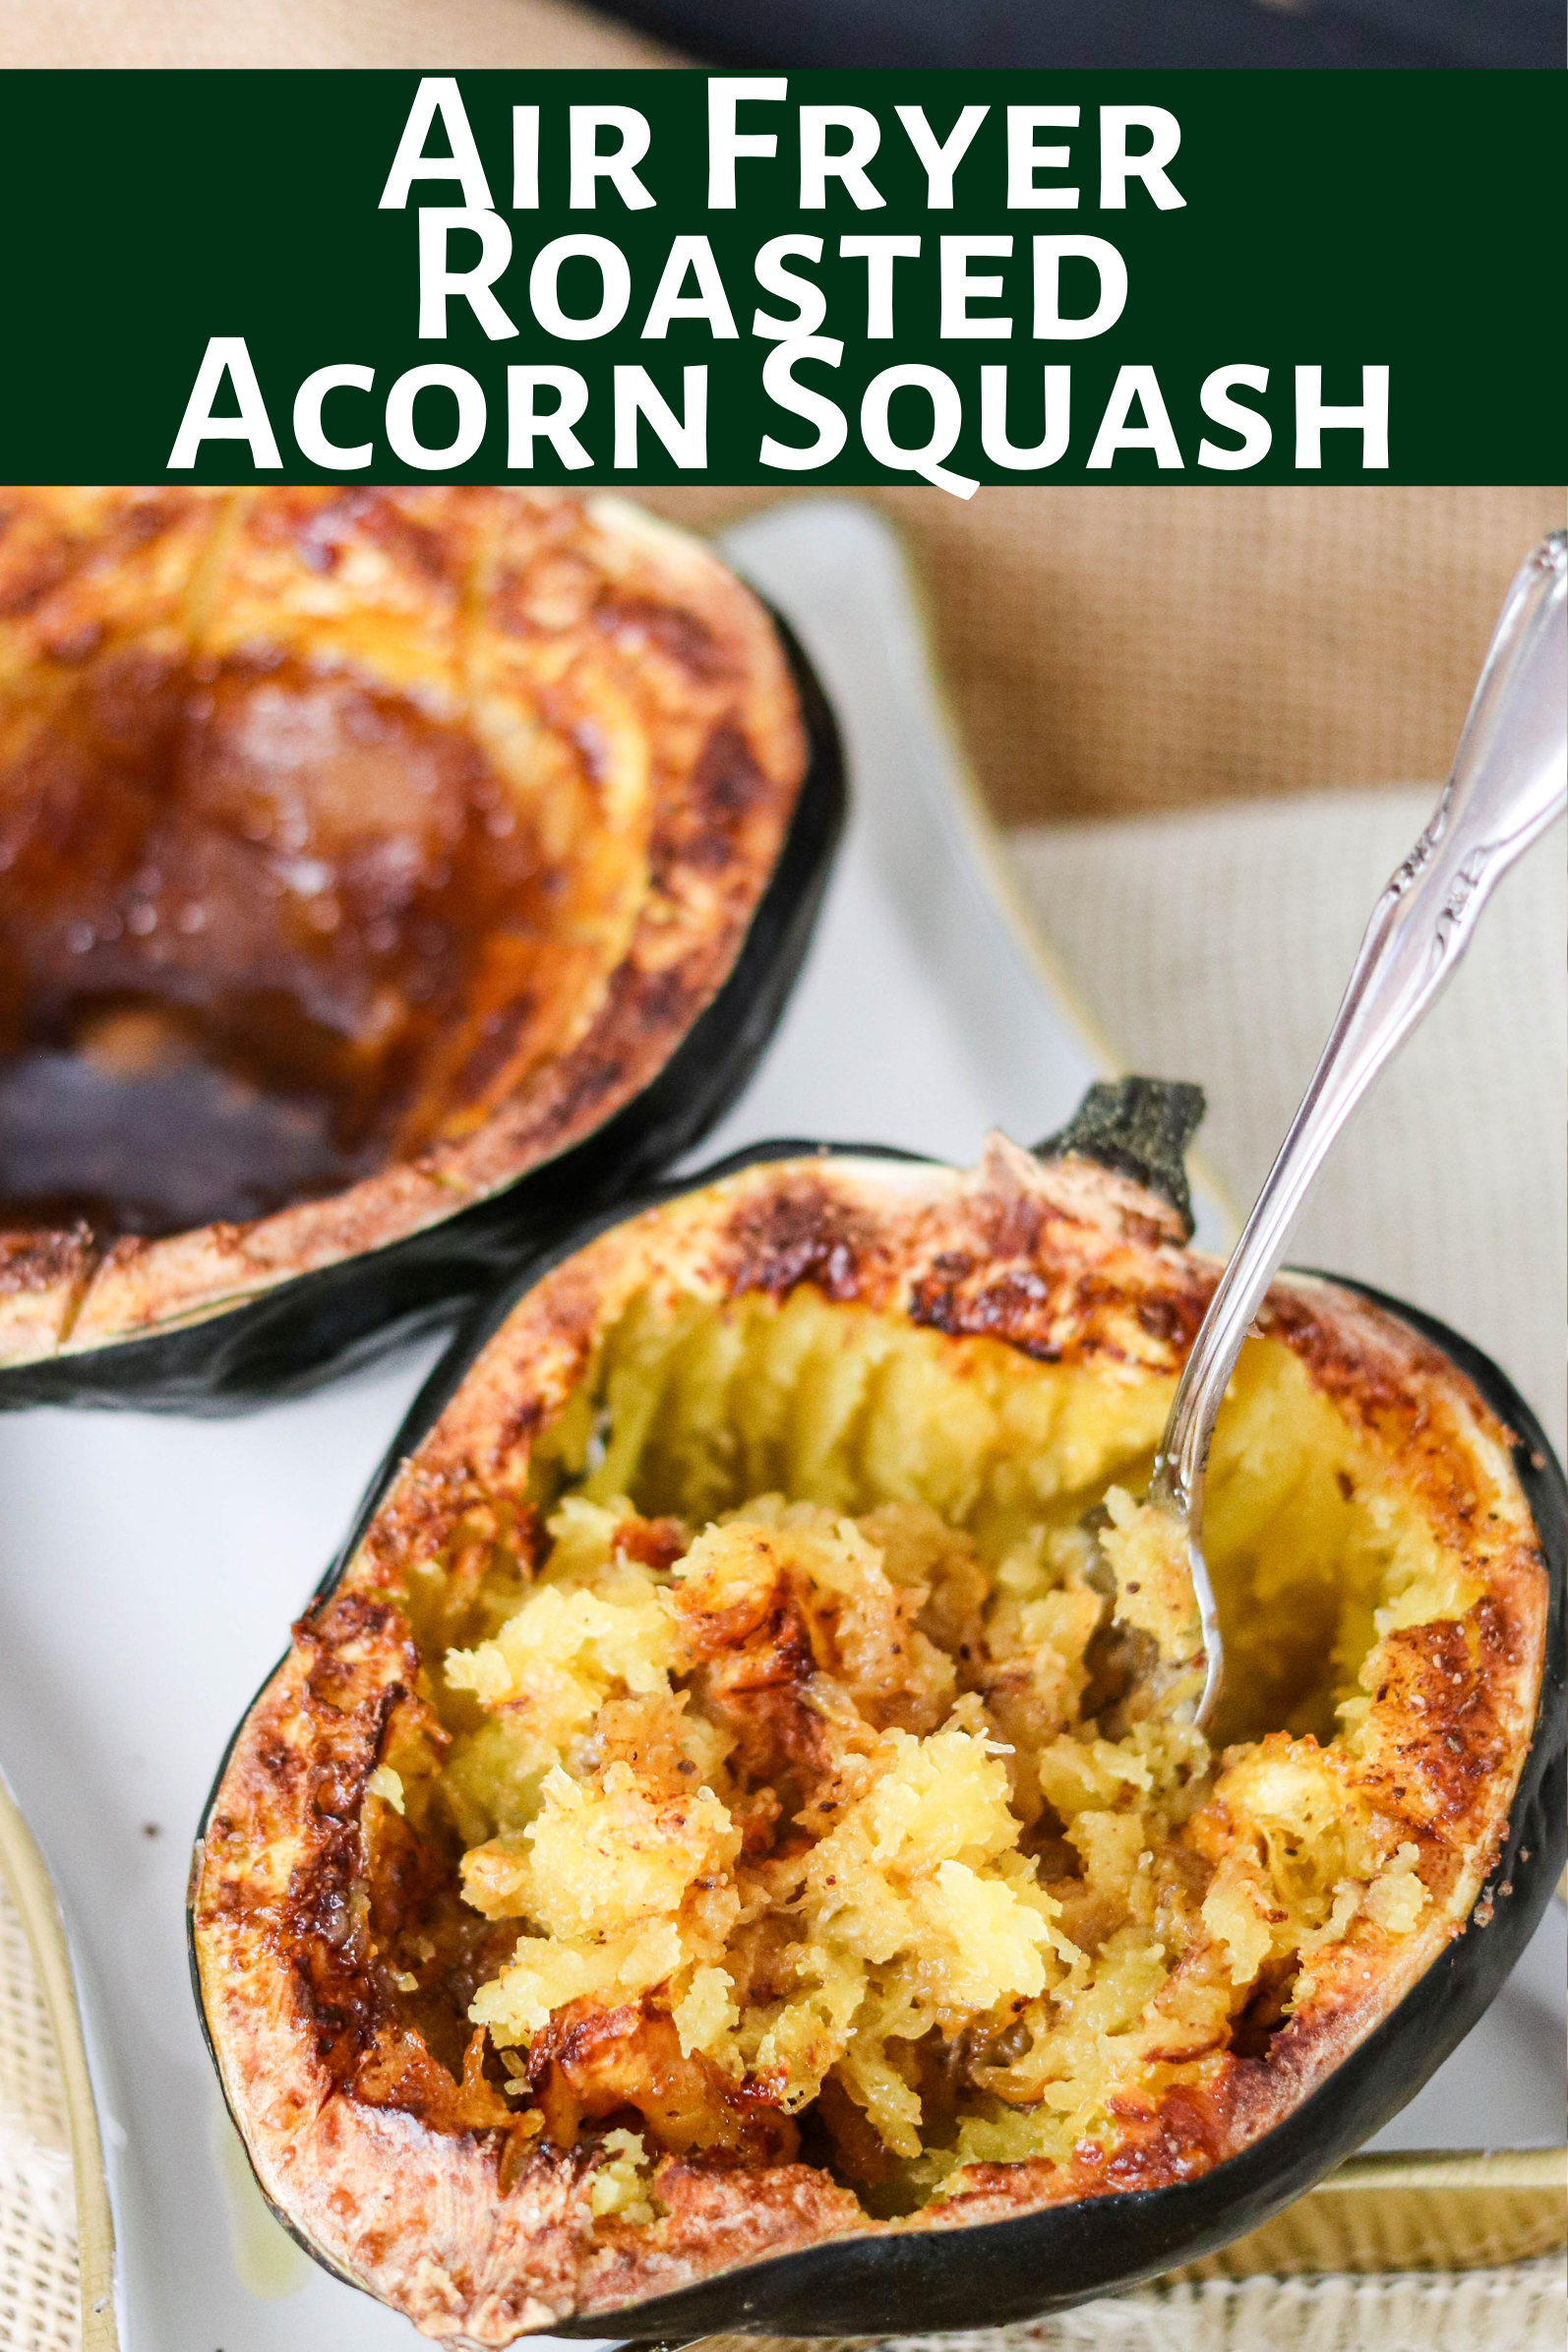 Air Fryer Acorn Squash With Baking Directions Domestic Superhero